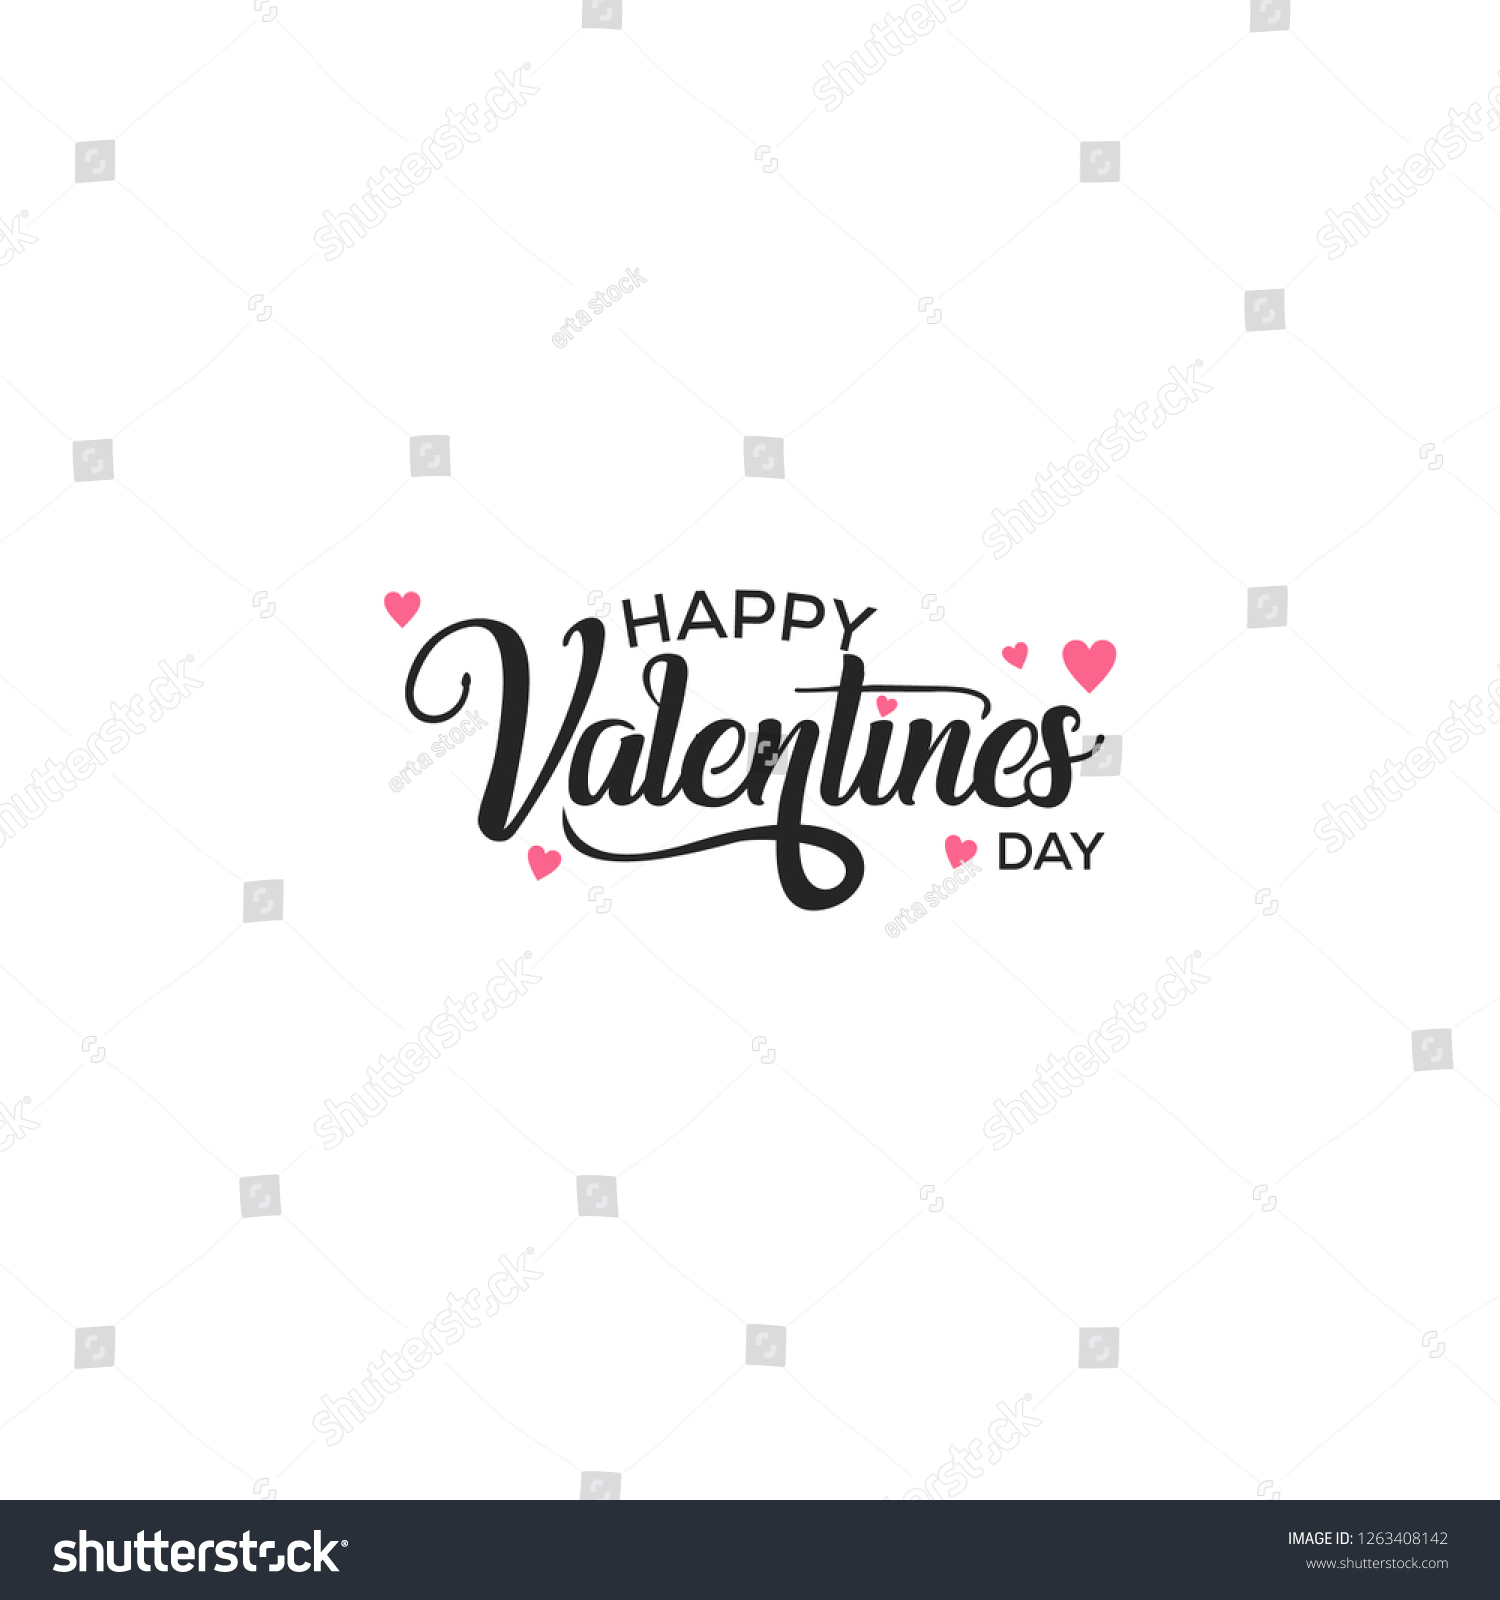 Happy Valentines Day typography poster with handwritten calligraphy text #1263408142